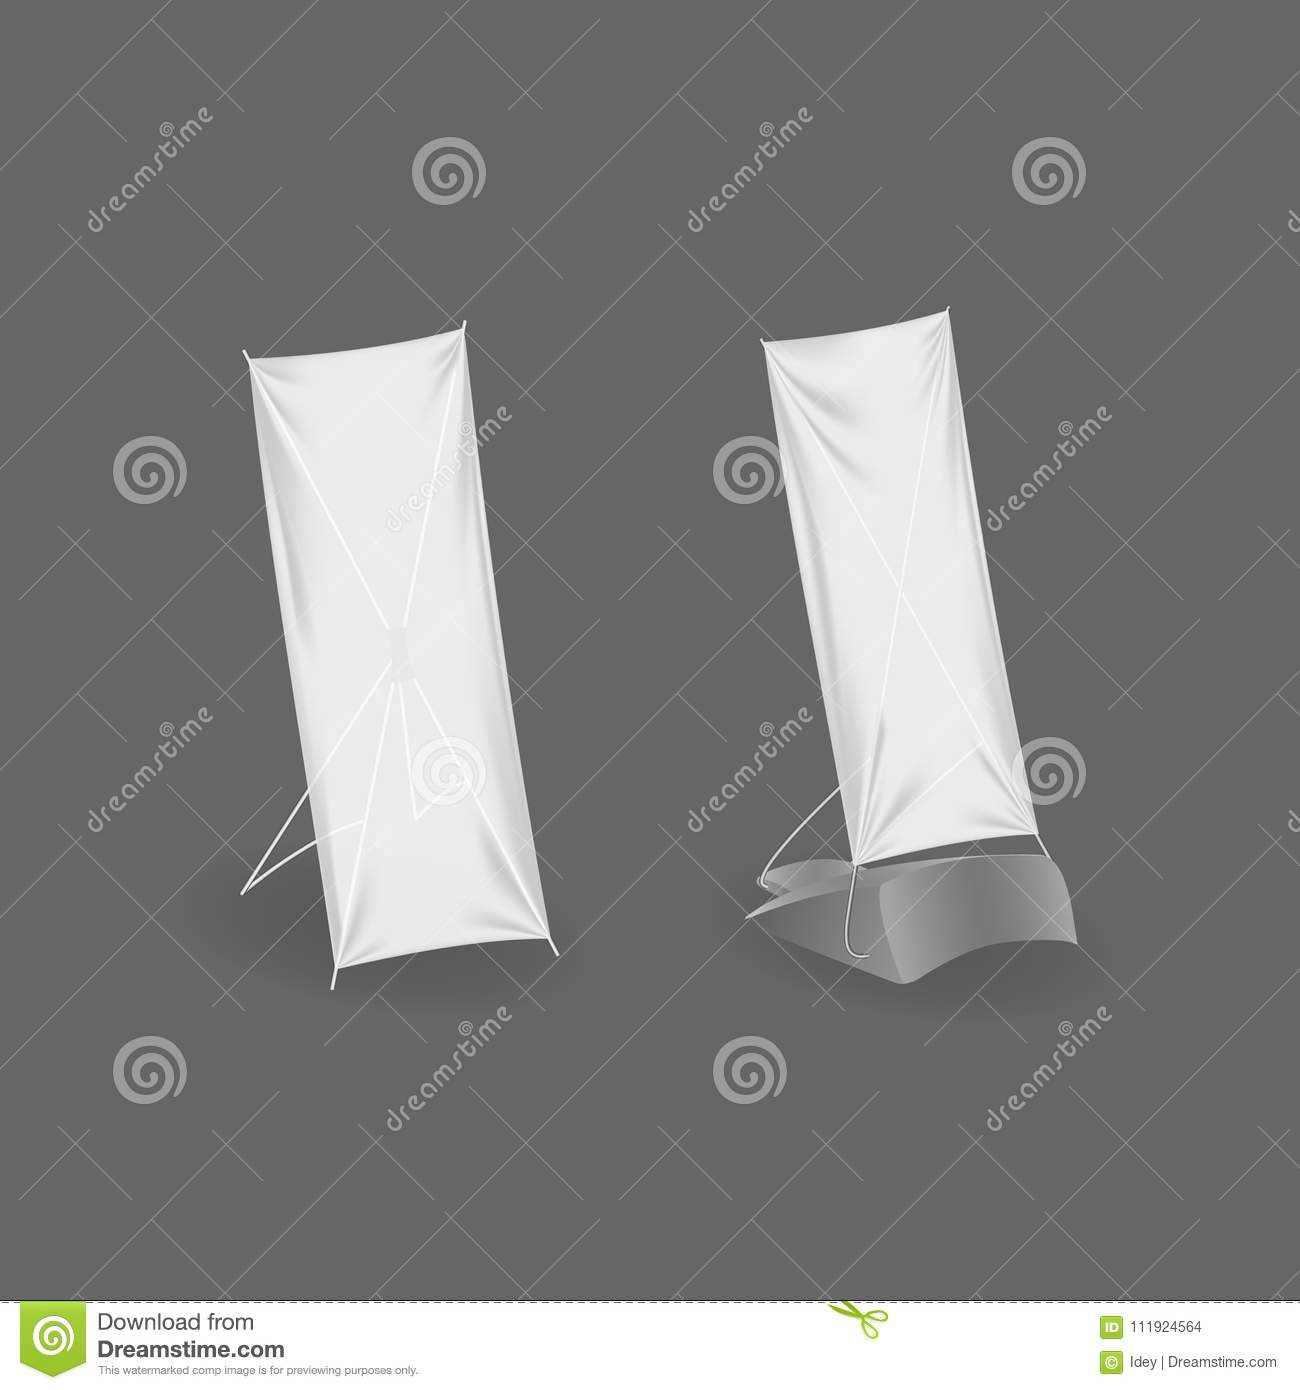 Outdoor advertising stand banner. Realistic billboards, blank poster, retail signs.